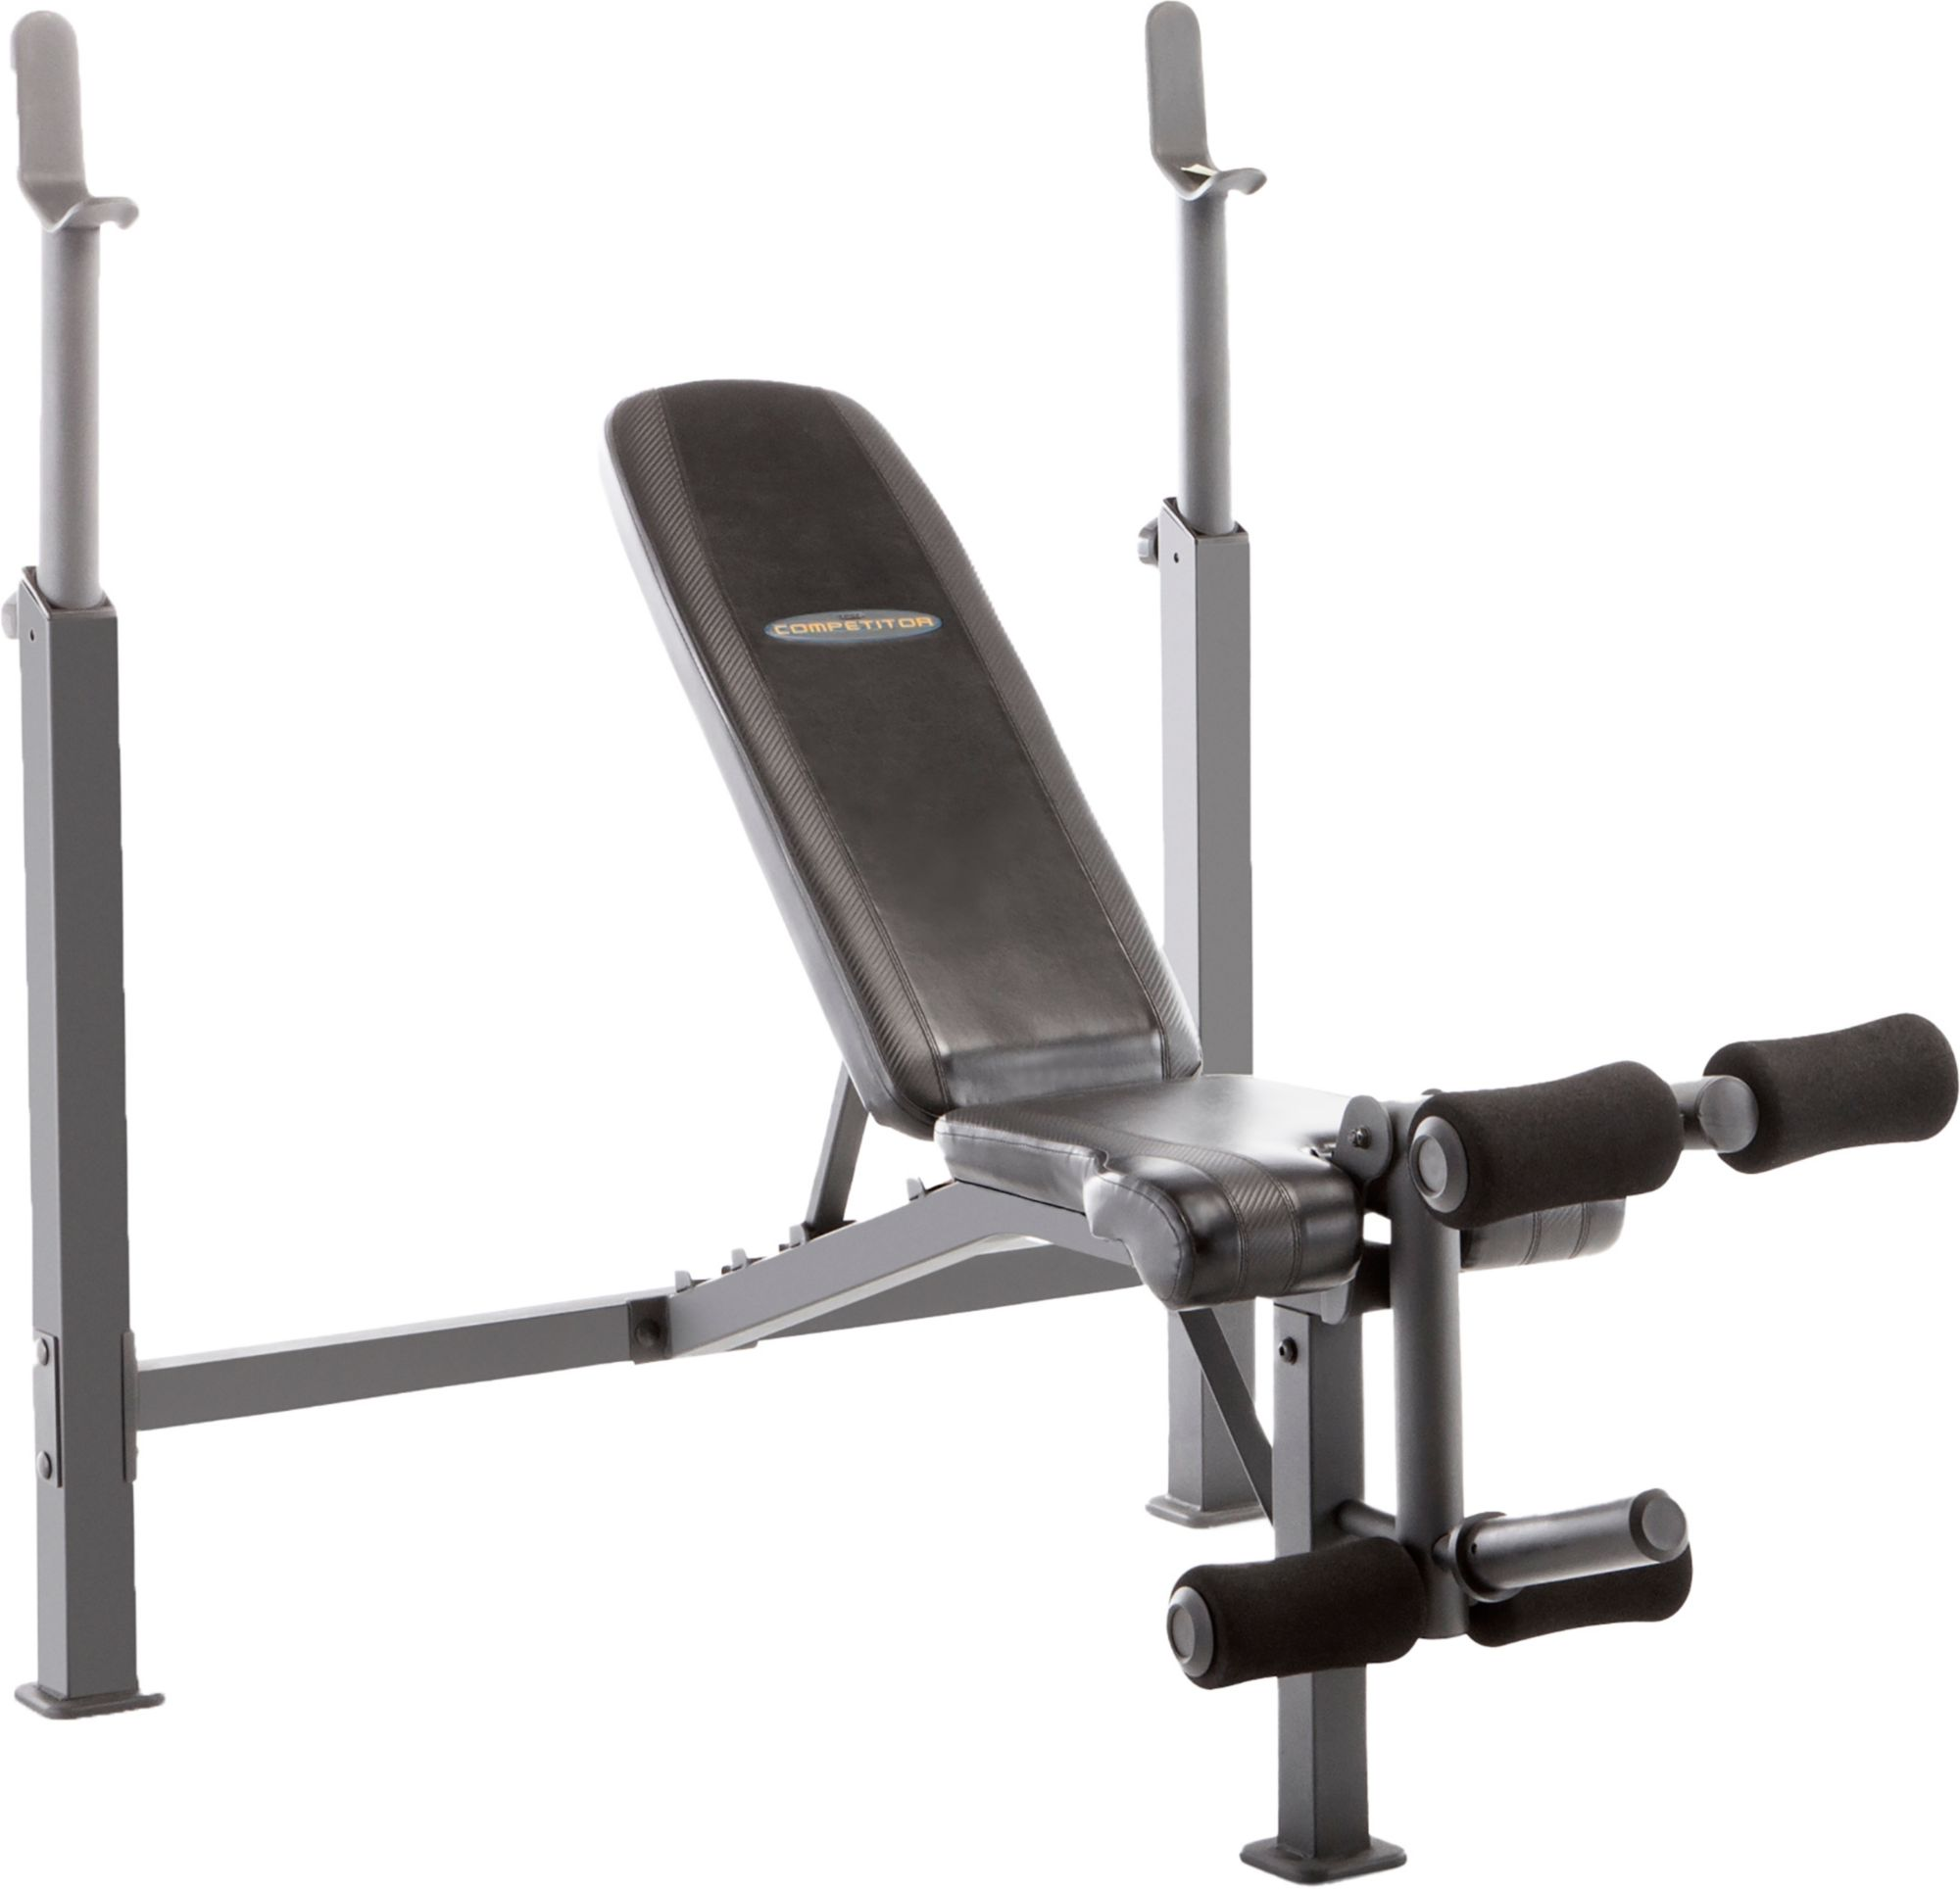 impressive marcy full size setcheap combo set lb setweight standard ideas cheap and weight image for olympic bench pro with sets of weights cheapweight competitor